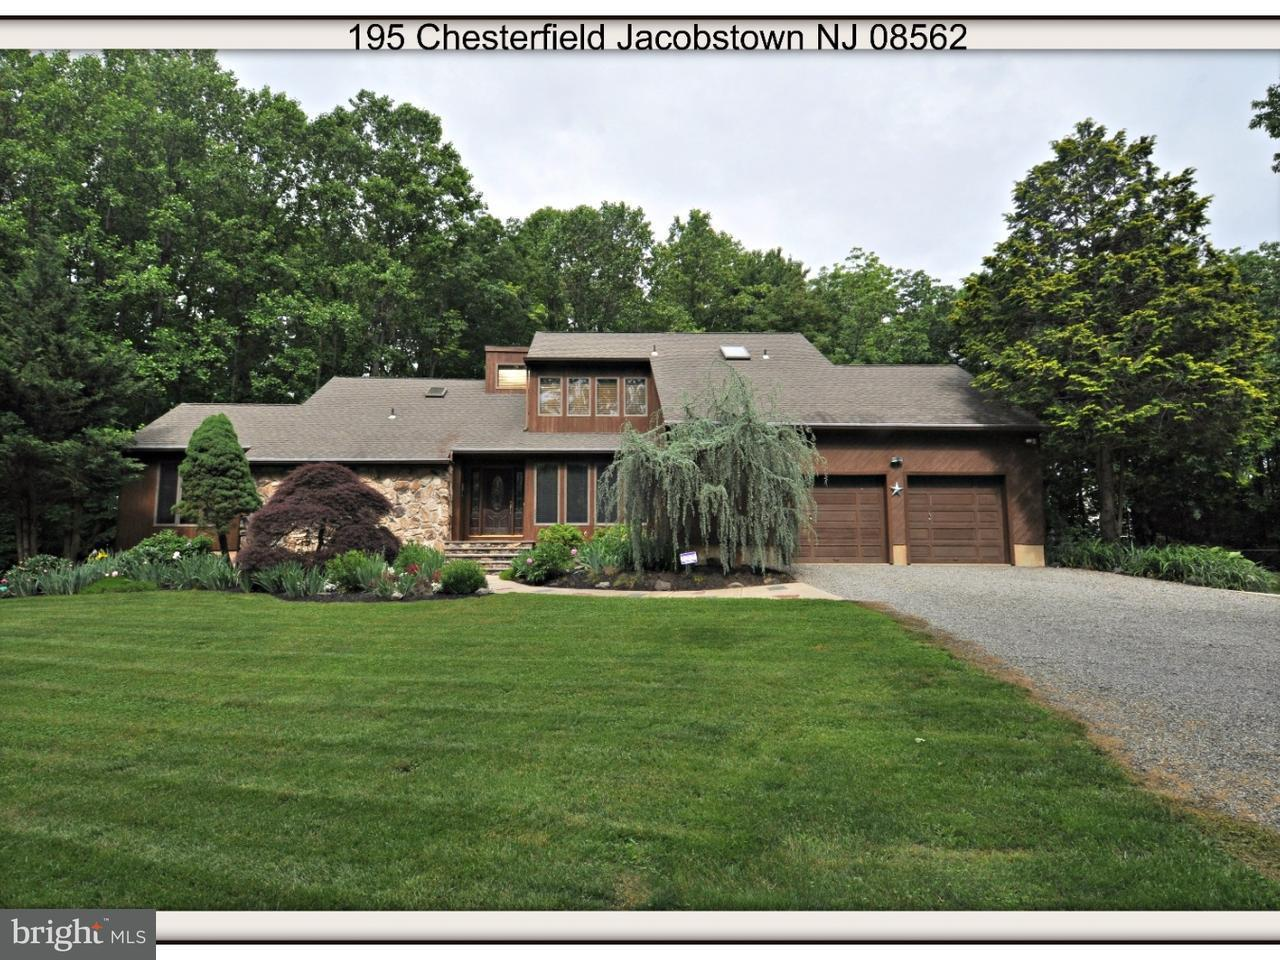 Single Family Home for Sale at 195 CHESTERFIELD JACOBSTOWN North Hanover, New Jersey 08562 United States